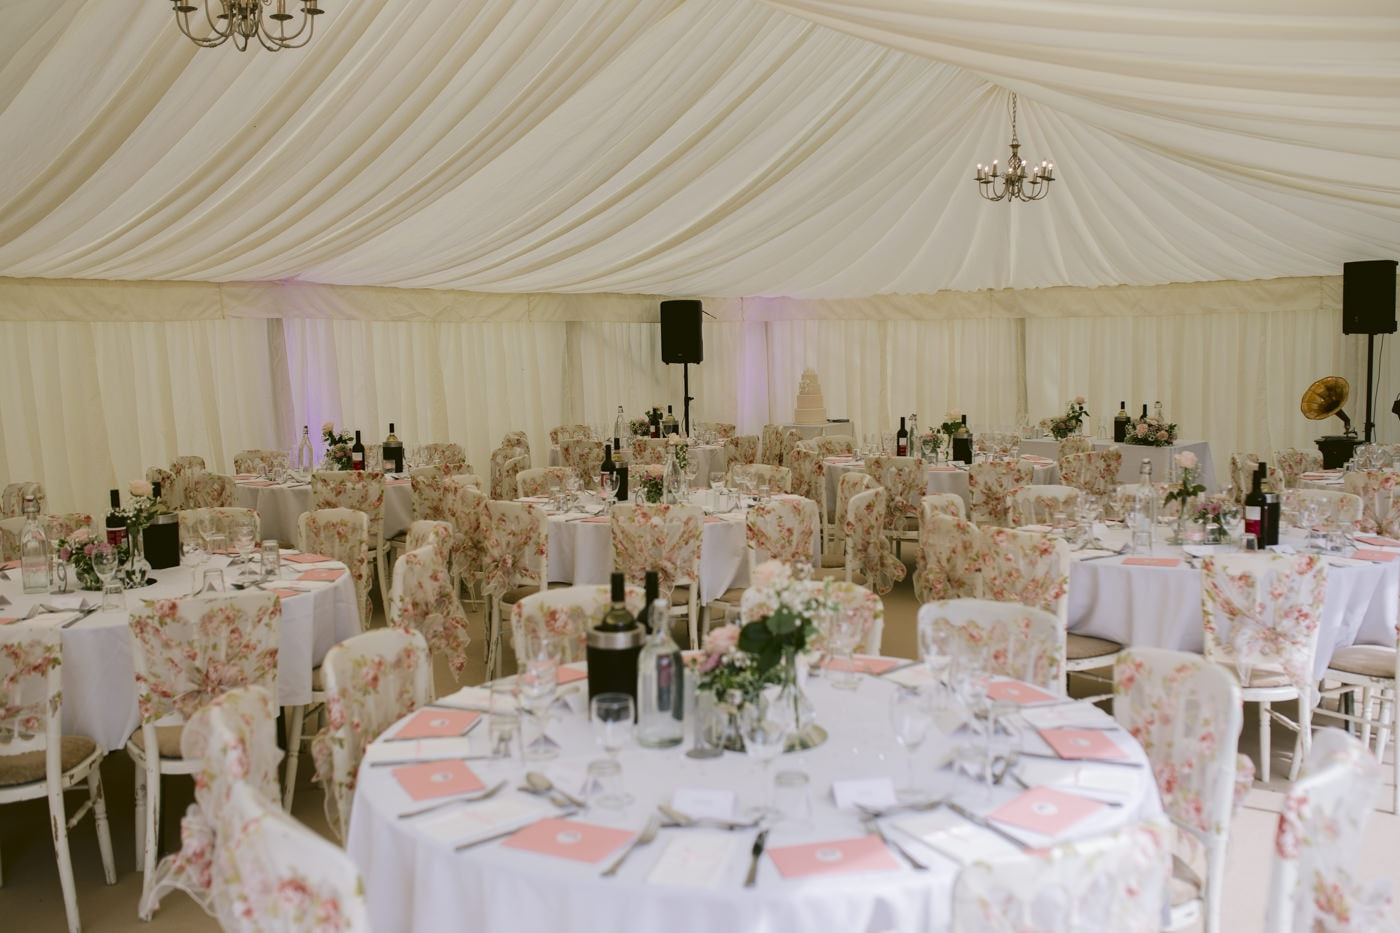 Main Wedding Reception Tables and Decorative chairs